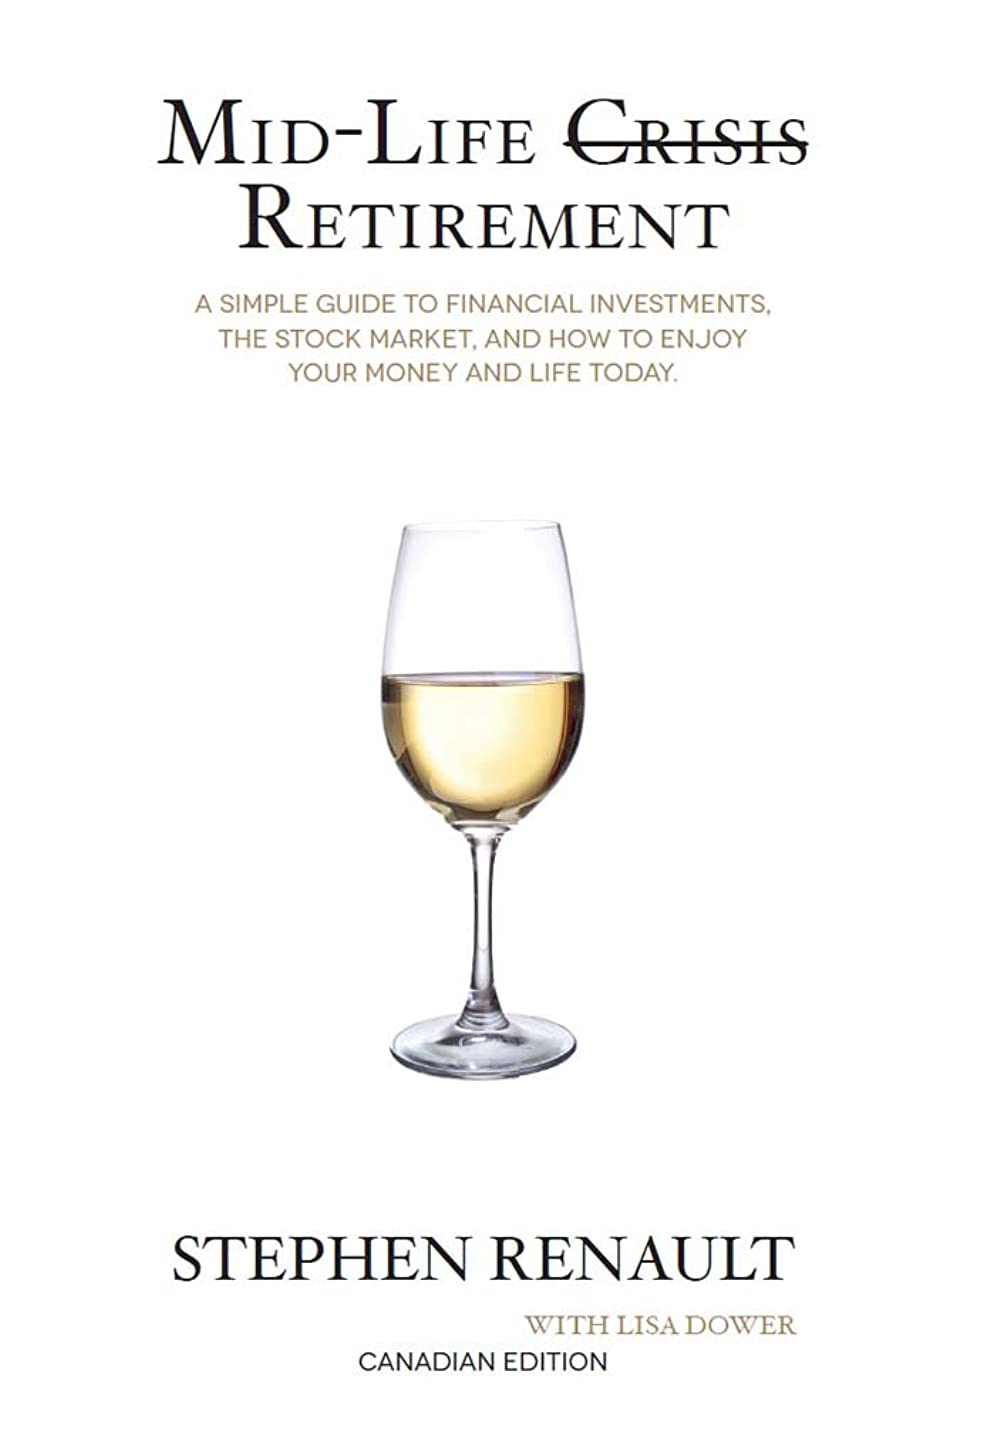 Mid-Life Crisis Retirement: A Simple Guide To Financial Investments, The Stock Market, And How To Enjoy Your Money And Life Today.